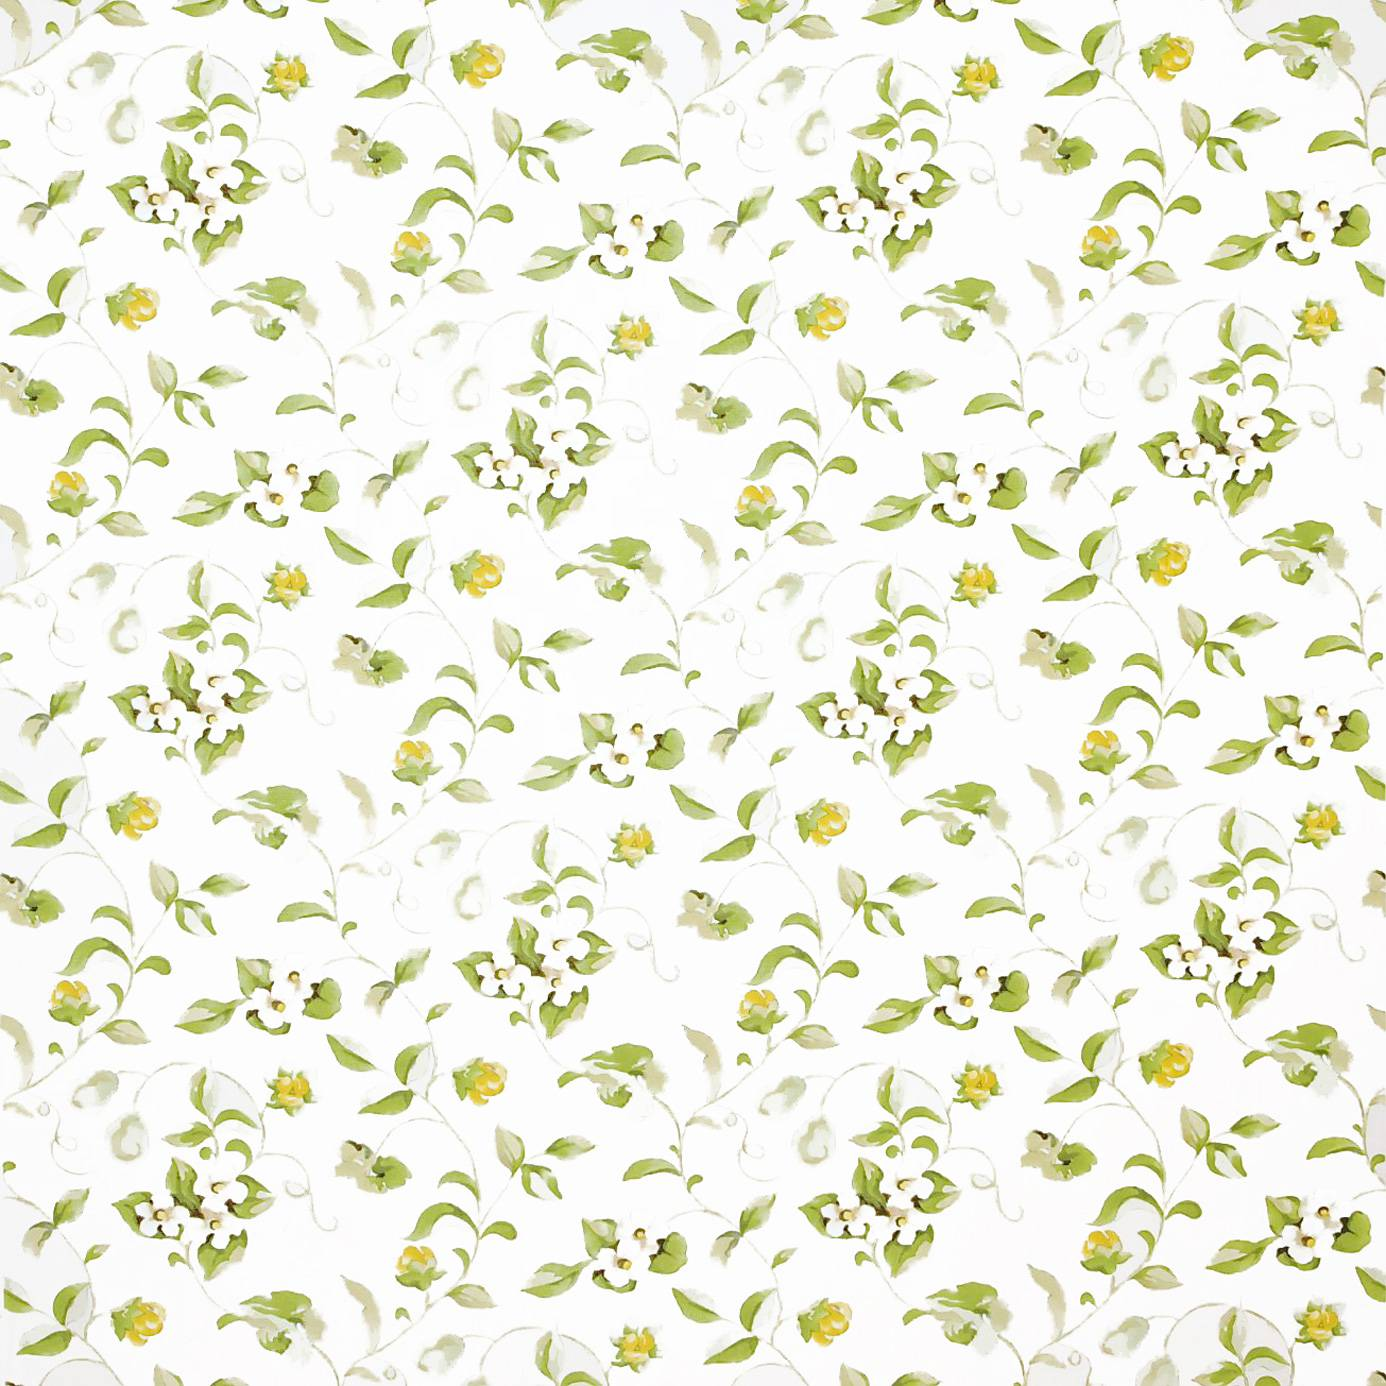 Lemon Green Curtains Curtains In Sanderson Orchard Blossom Fabric Lemon Green Product Code Dapgor202